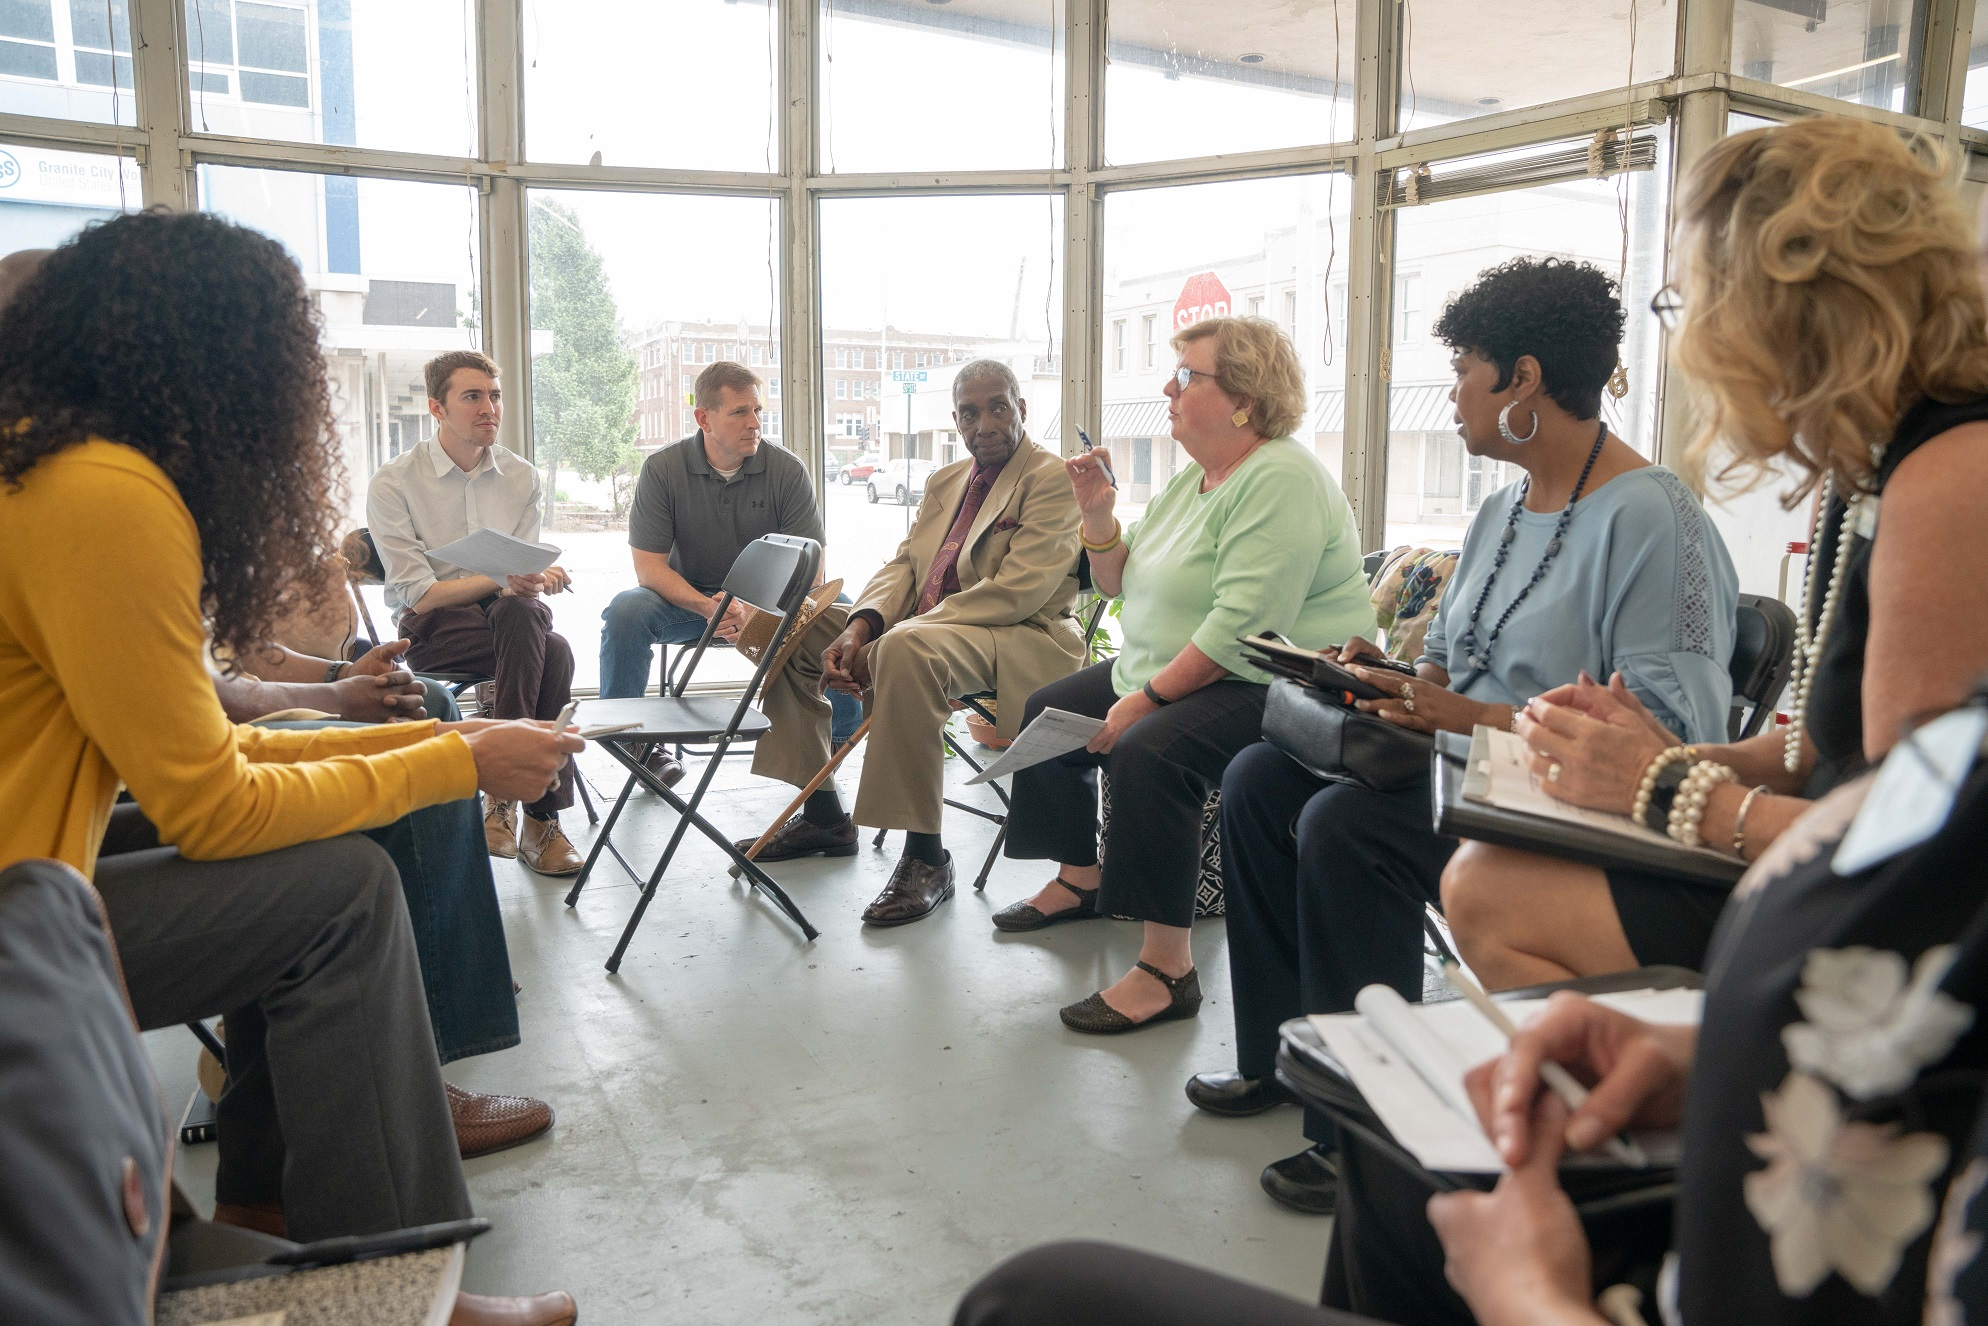 Building bridges across st. louis and advocating for policies that strengthen our civic muscle -